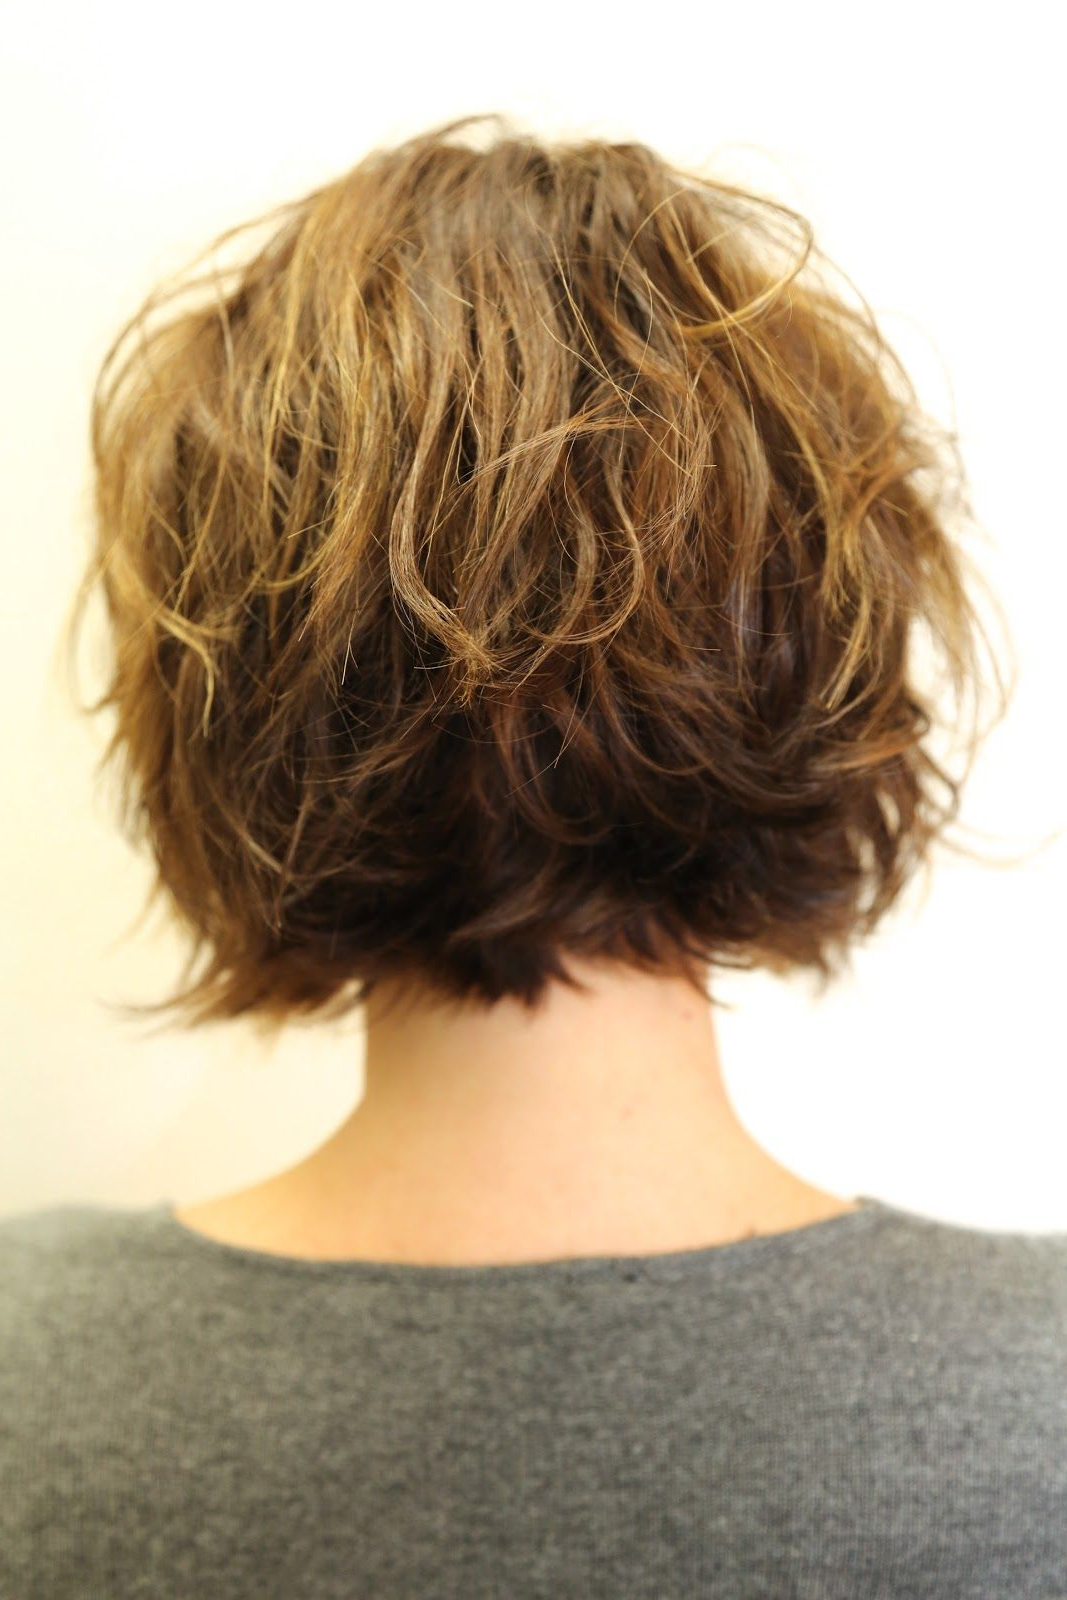 Wish I Could Get My Hair To Loosely Wave Like Thisand Stay Intended For Loosely Waved Messy Brunette Bob Hairstyles (View 13 of 25)